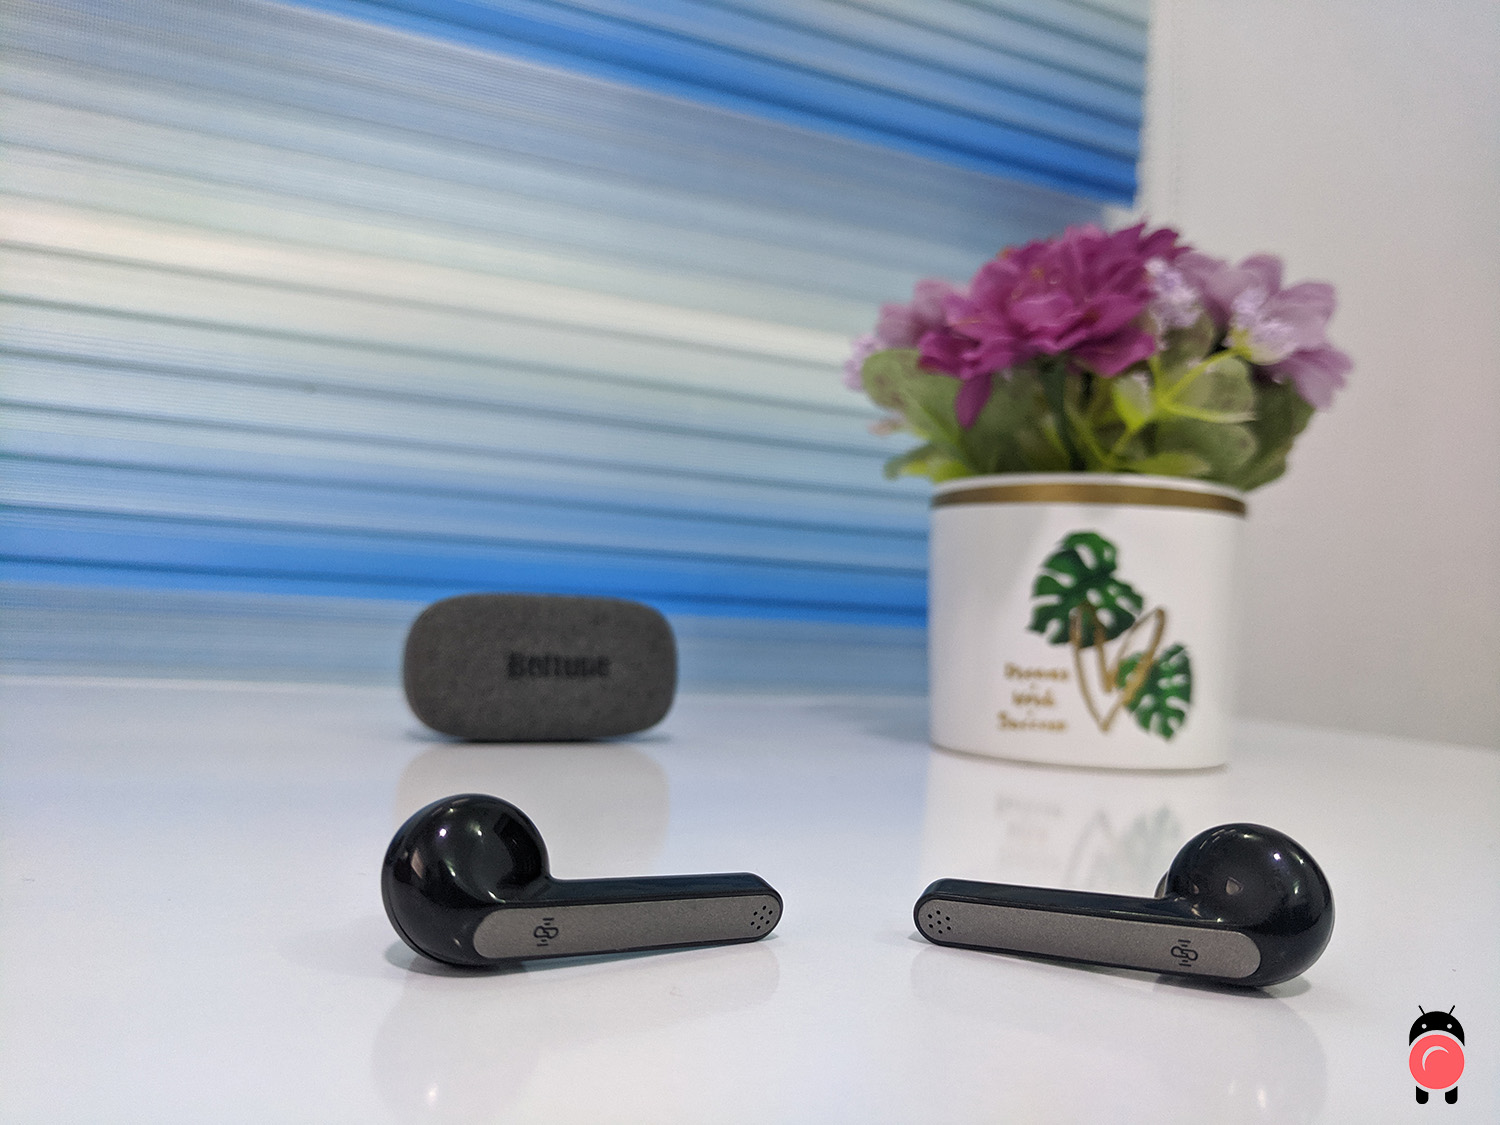 Boltune BT-BH024 wireless earbuds review